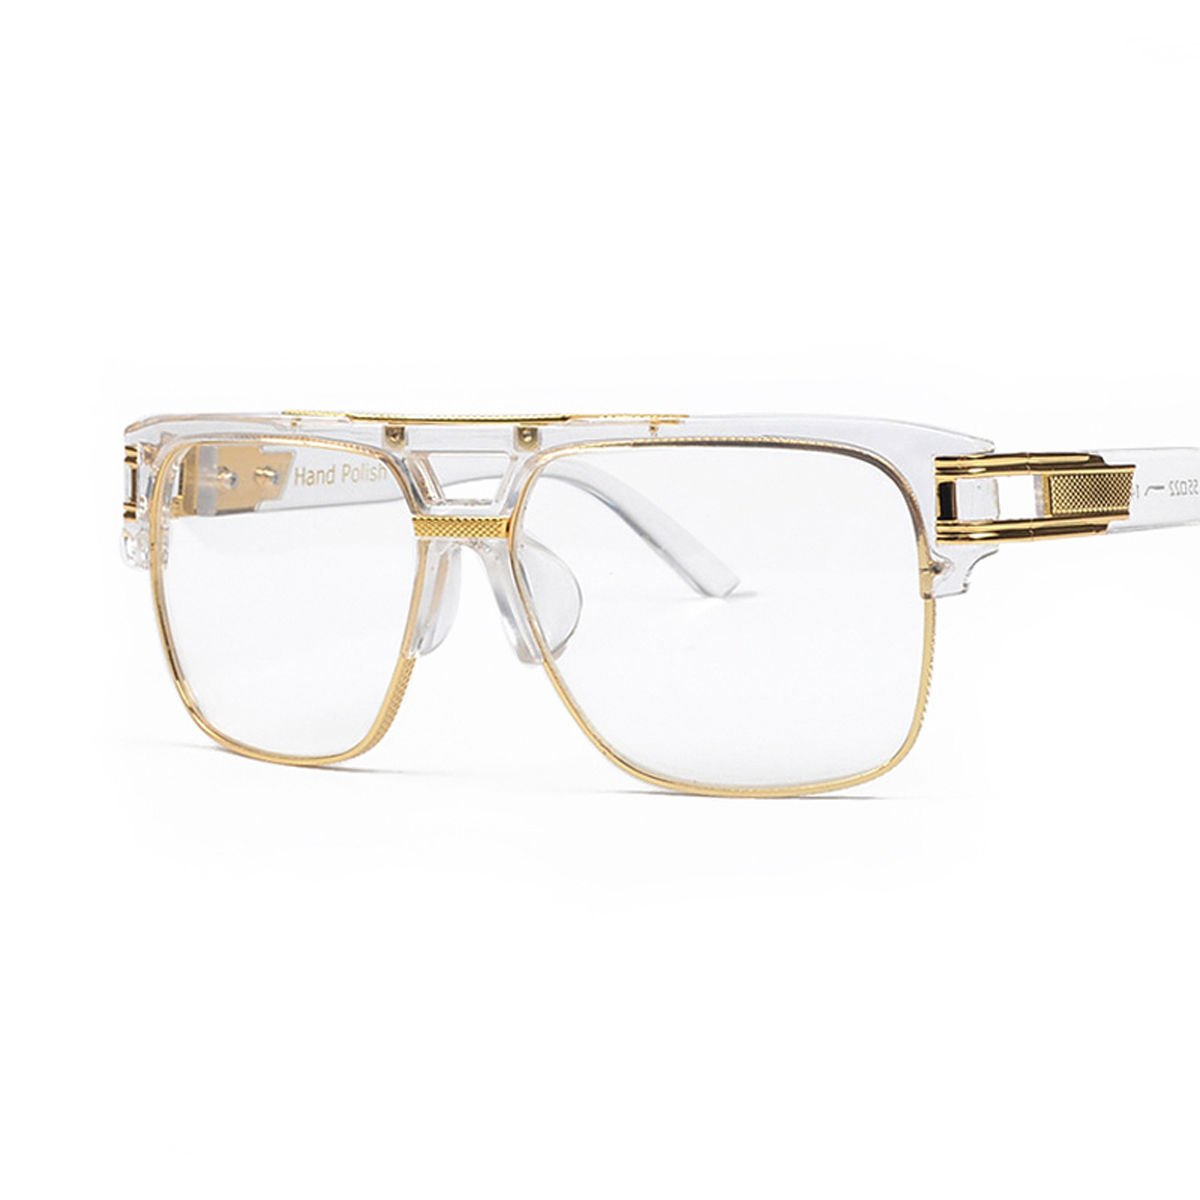 Men's Gold Clear Lens Hip Hop Paid In Full Large Frame Glasses